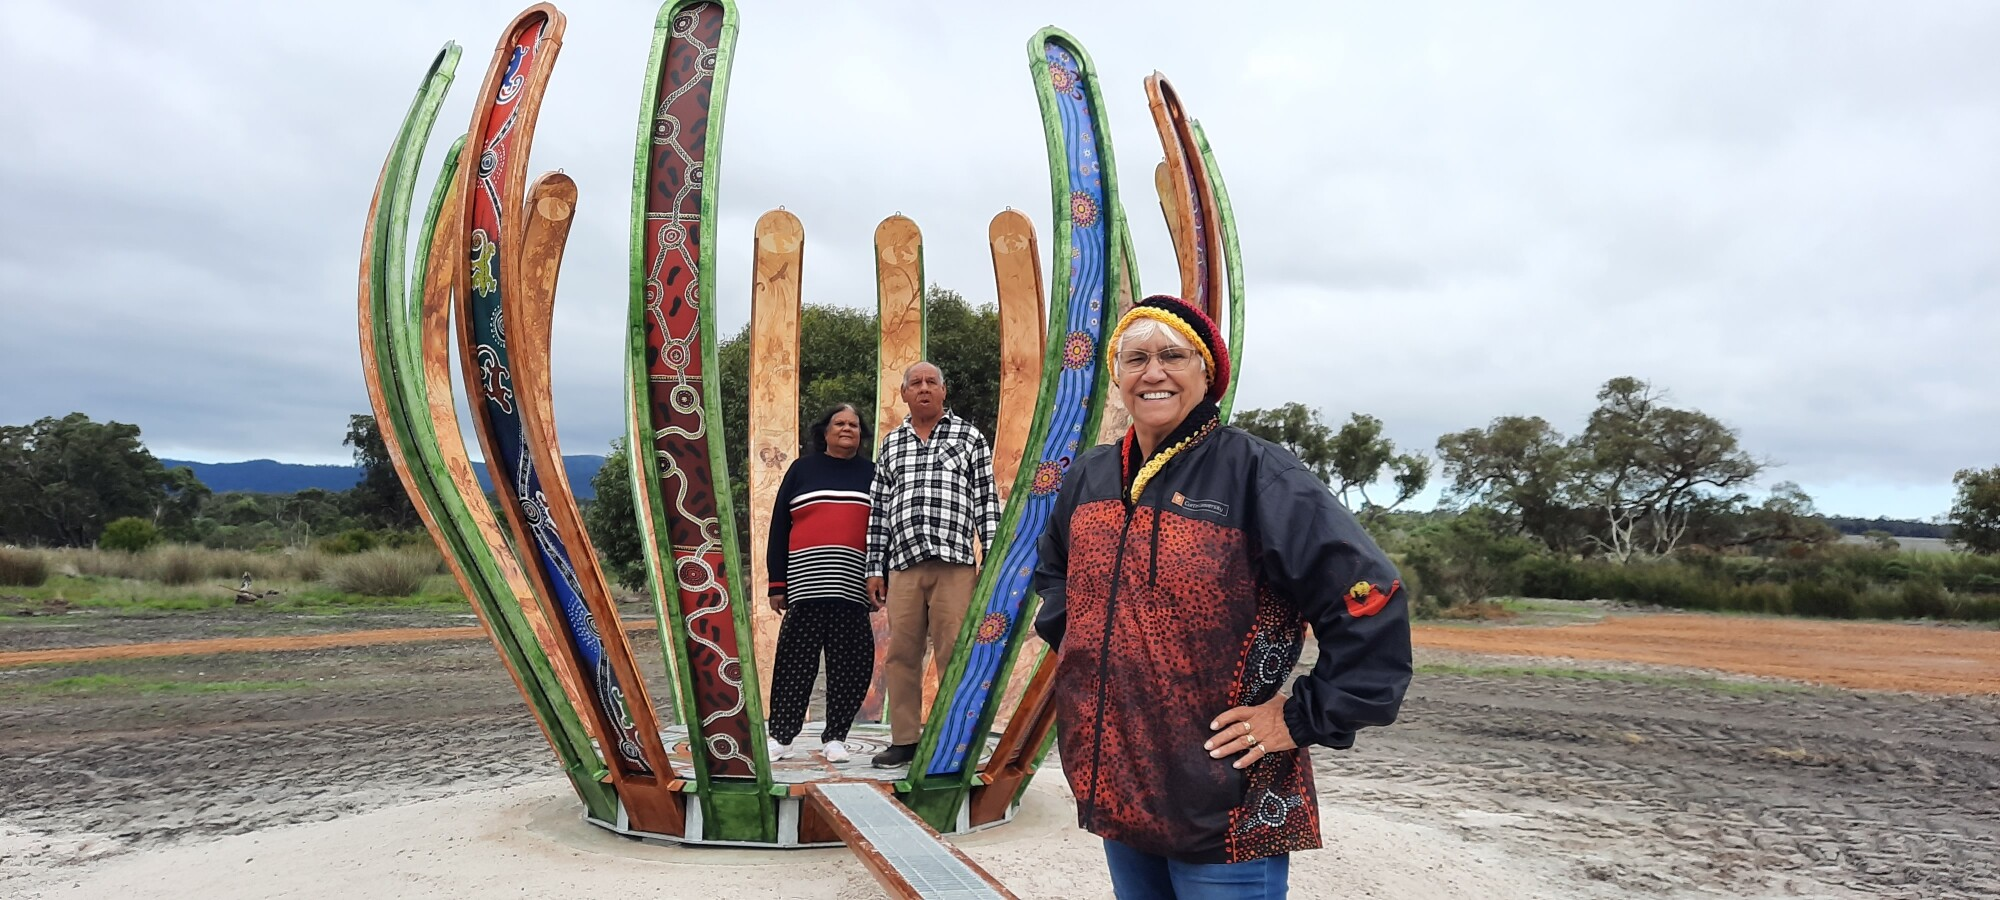 Noongar artist Carol Petterson stands in front of the Genestreams sculpture. Two indigenous workshop participants stand in the middle of the brightly coloured sculpture